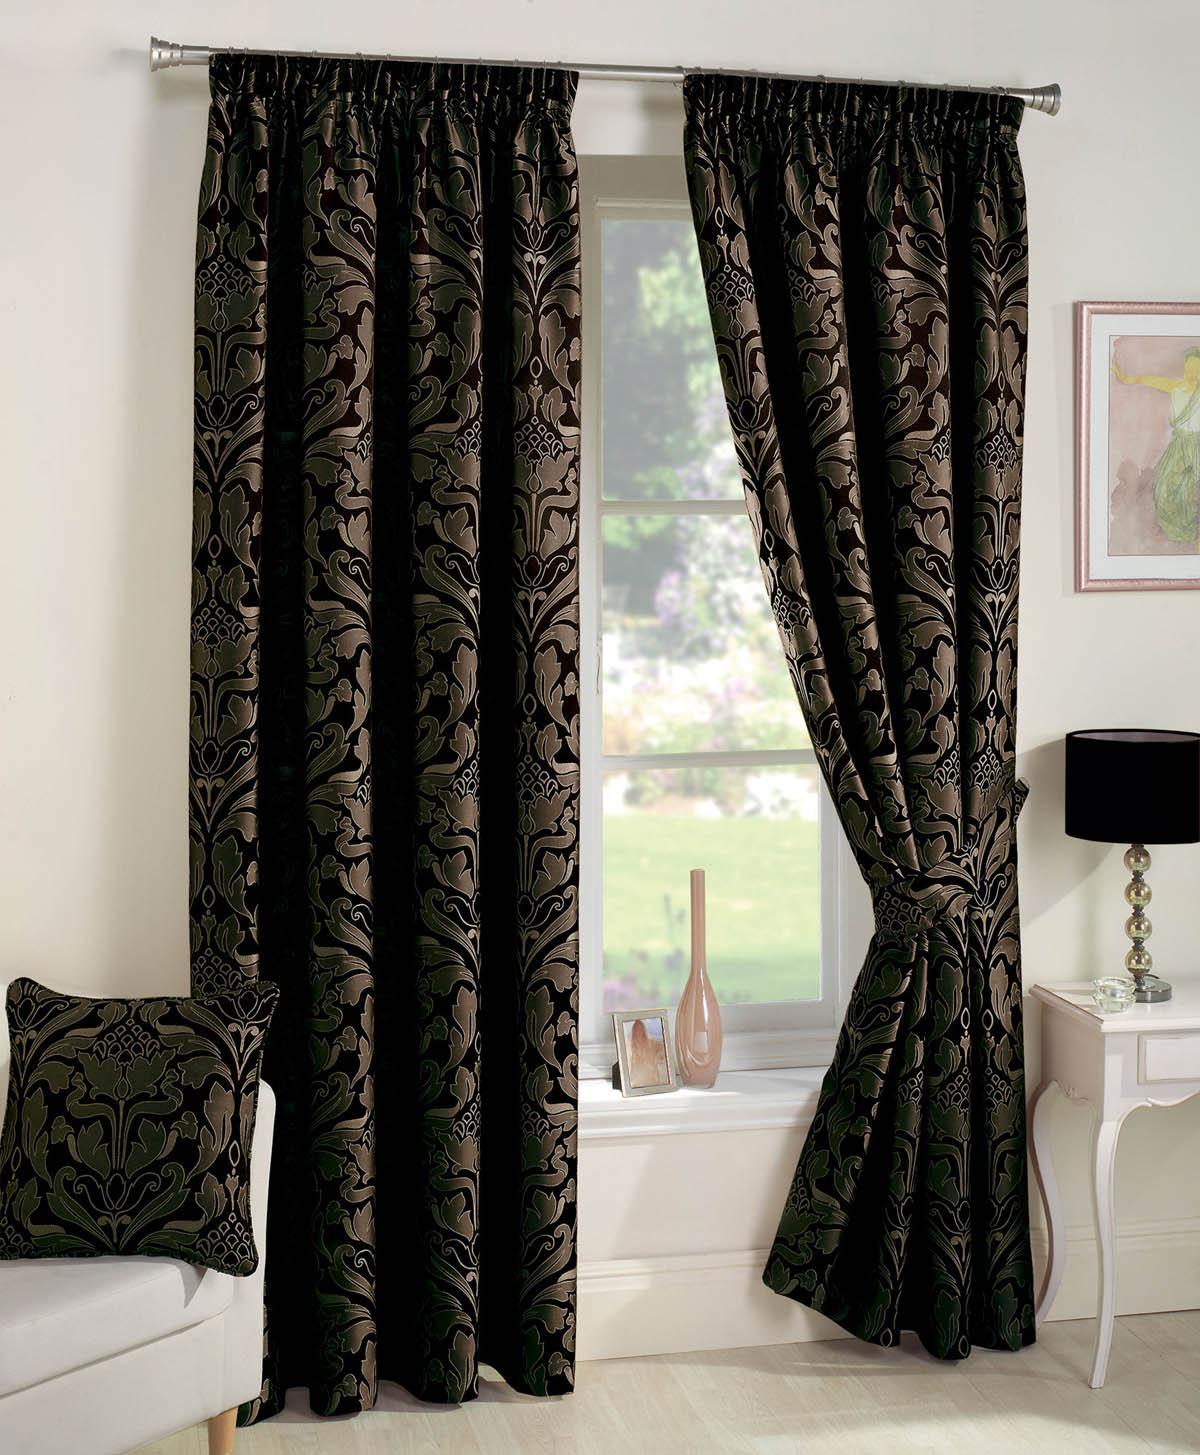 Stockists of Black Crompton Ready Made Lined Curtains